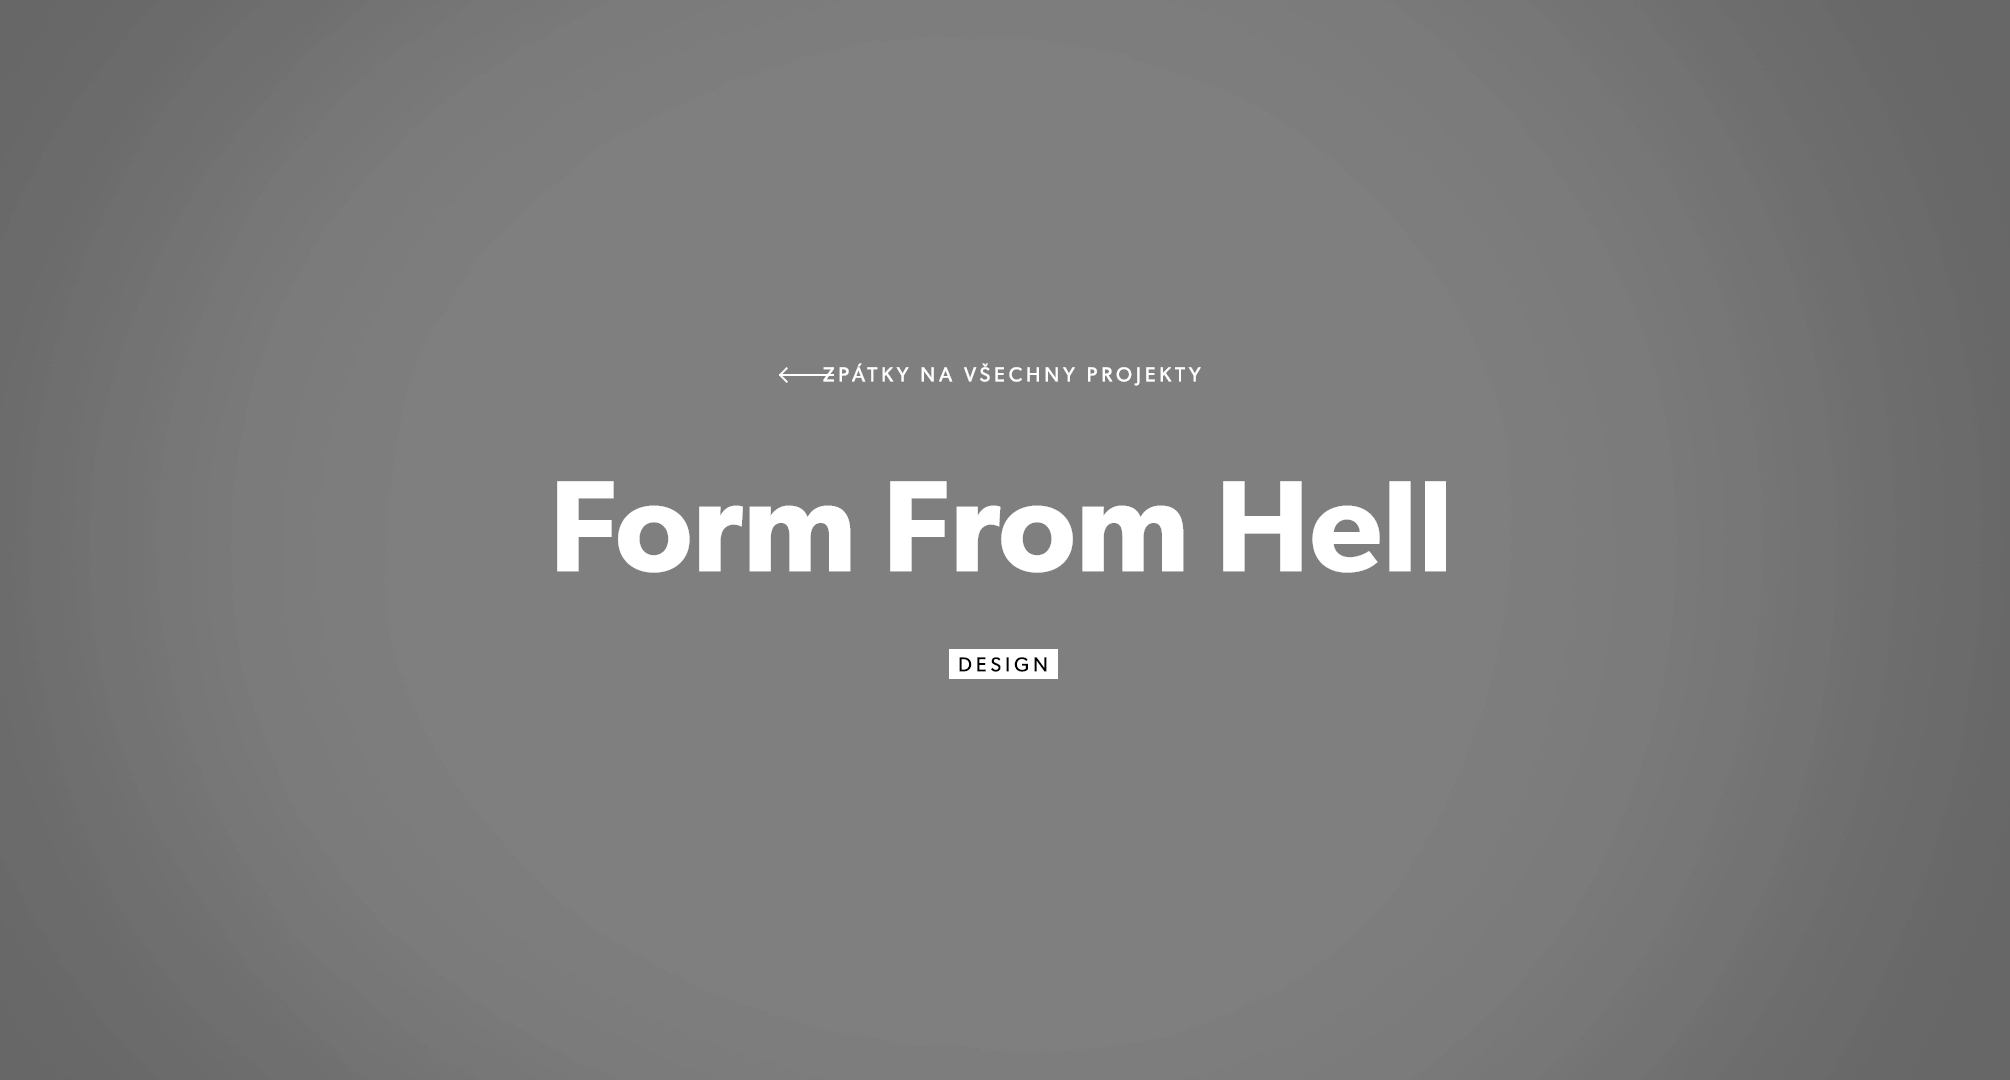 Form From Hell (MoroSystems)